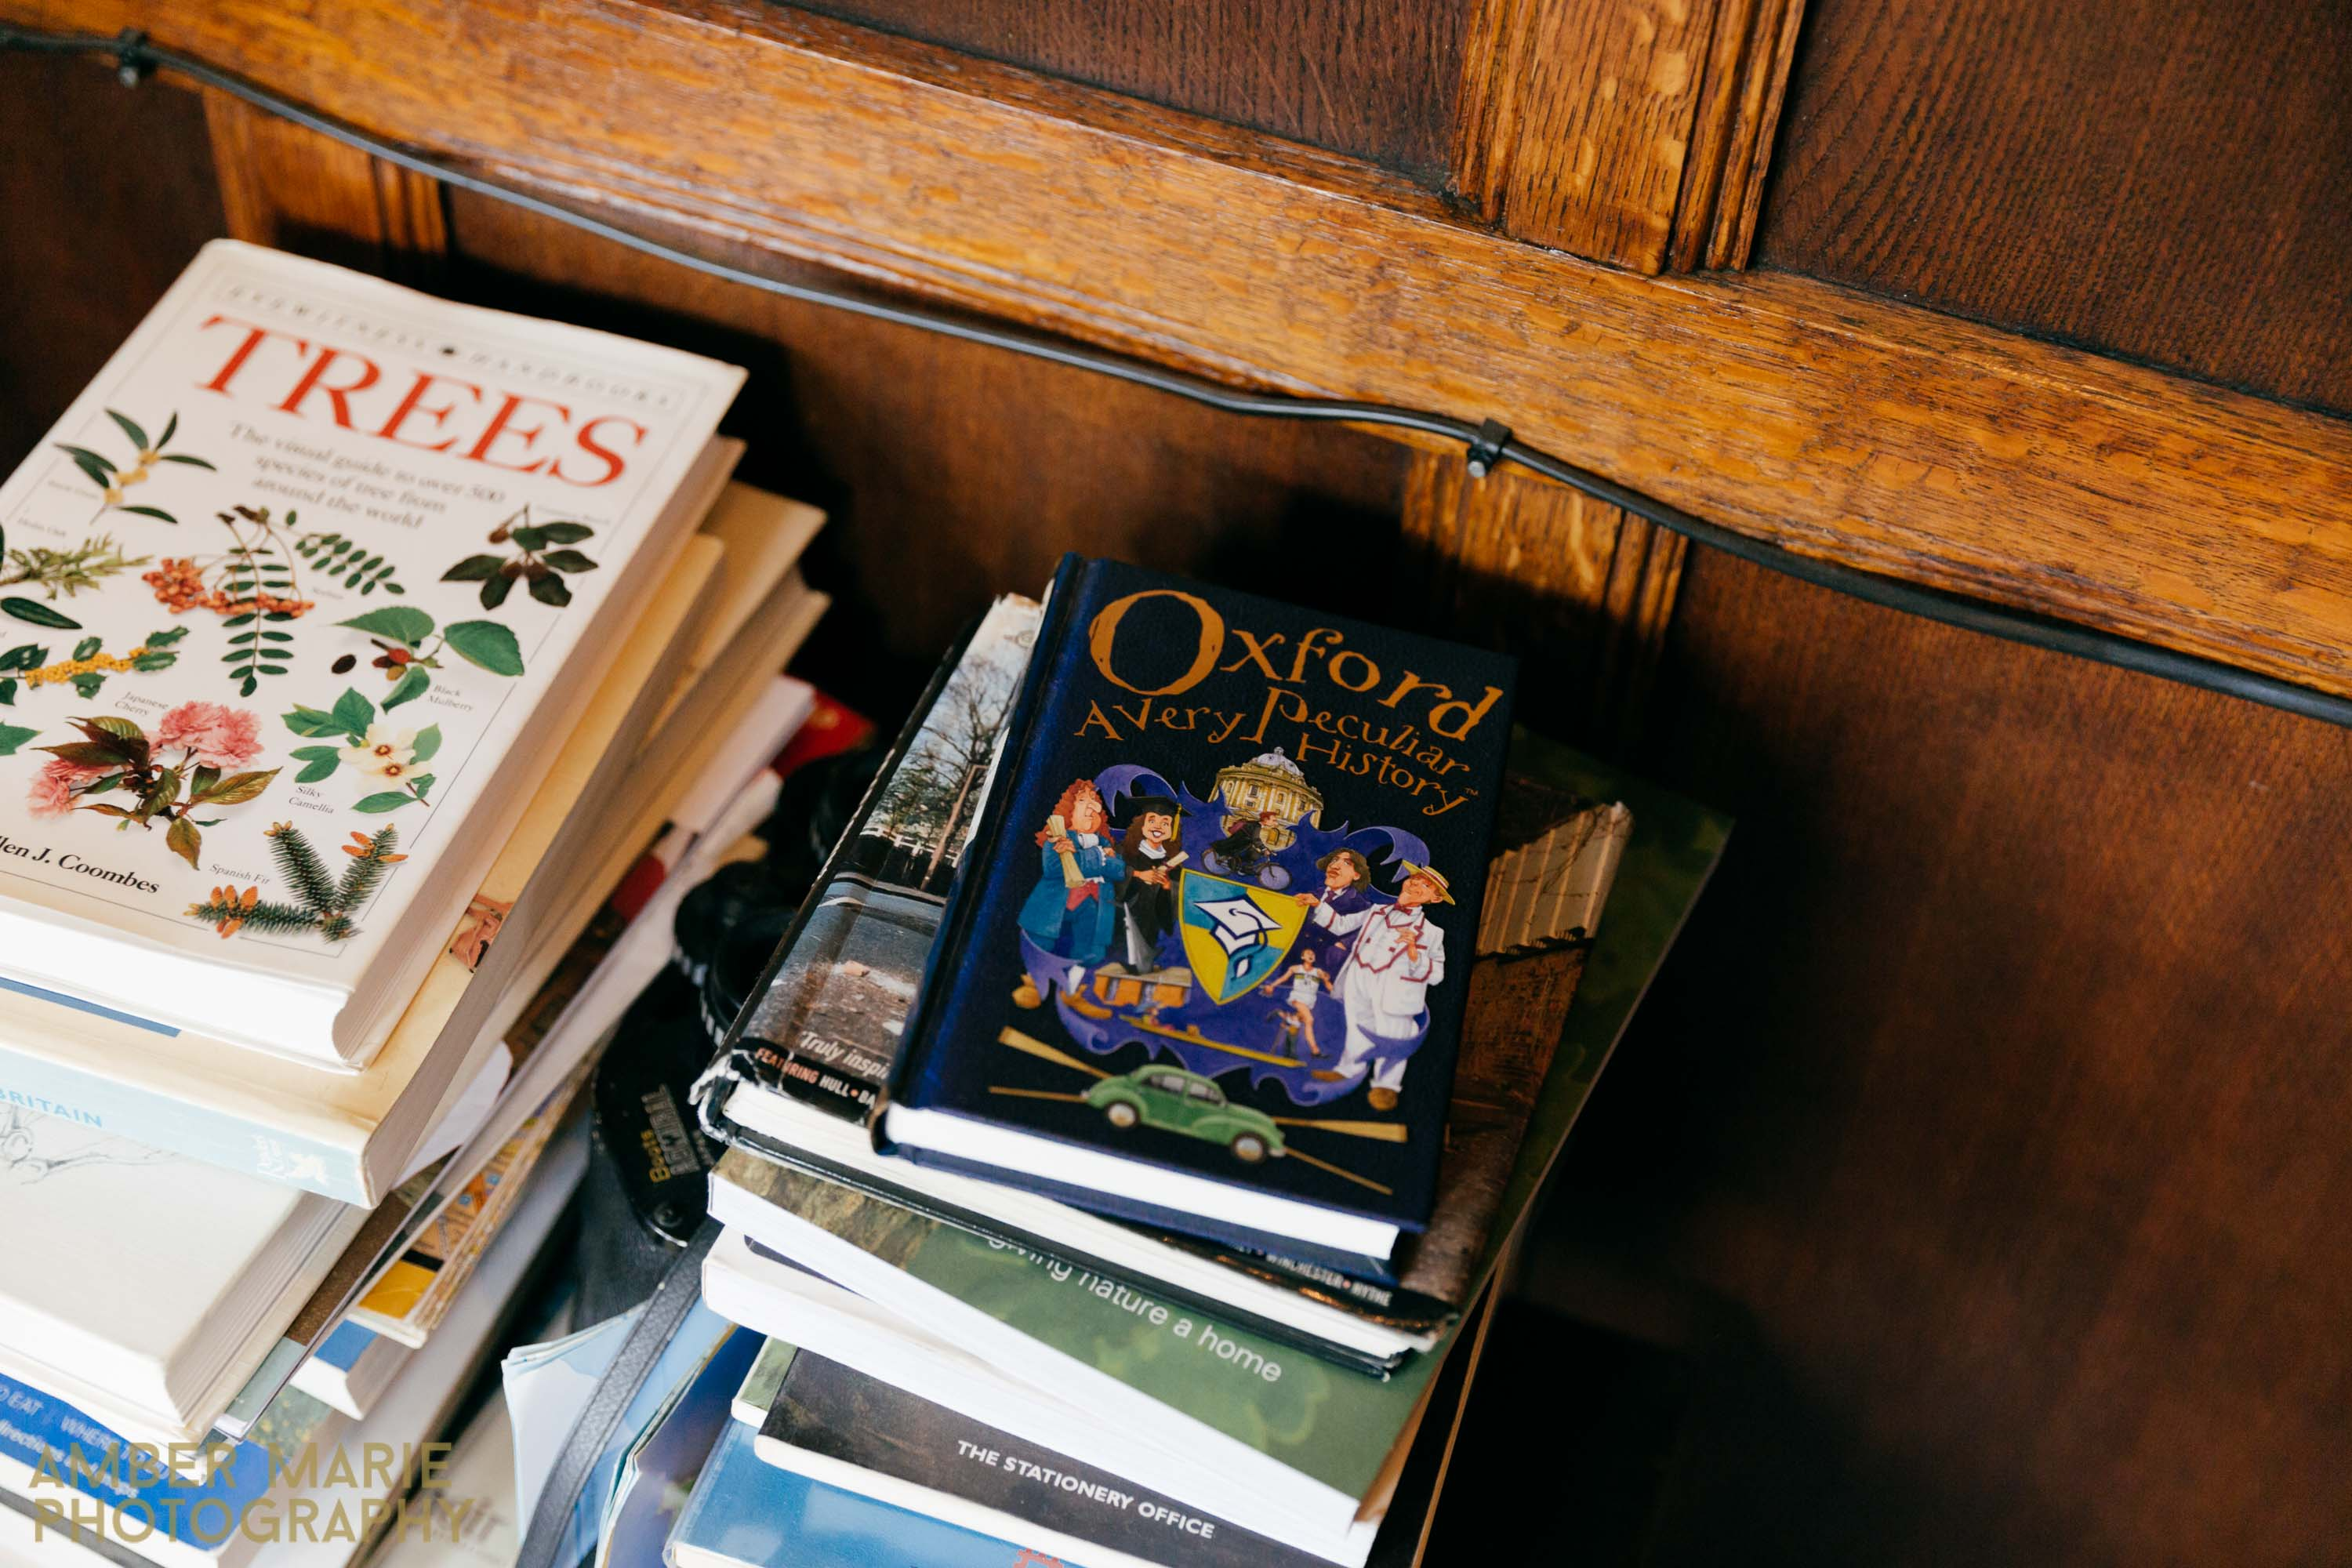 Springfield Lake Quirky Oxford wedding venues